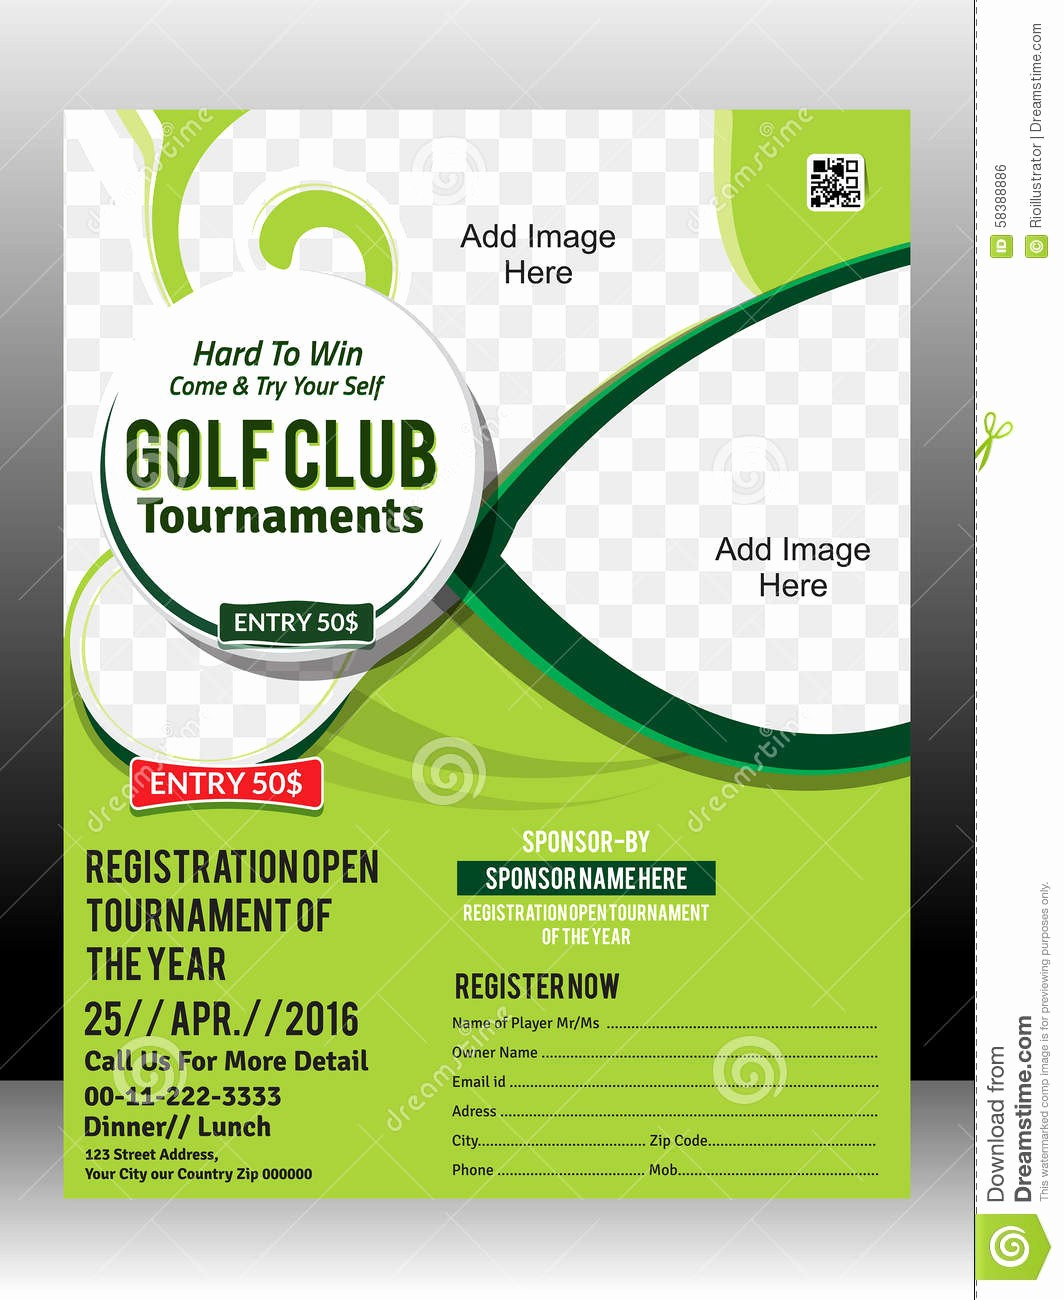 Golf tournament Invitation Template Free Lovely Golf Scramble Flyer Template Yourweek D2c345eca25e